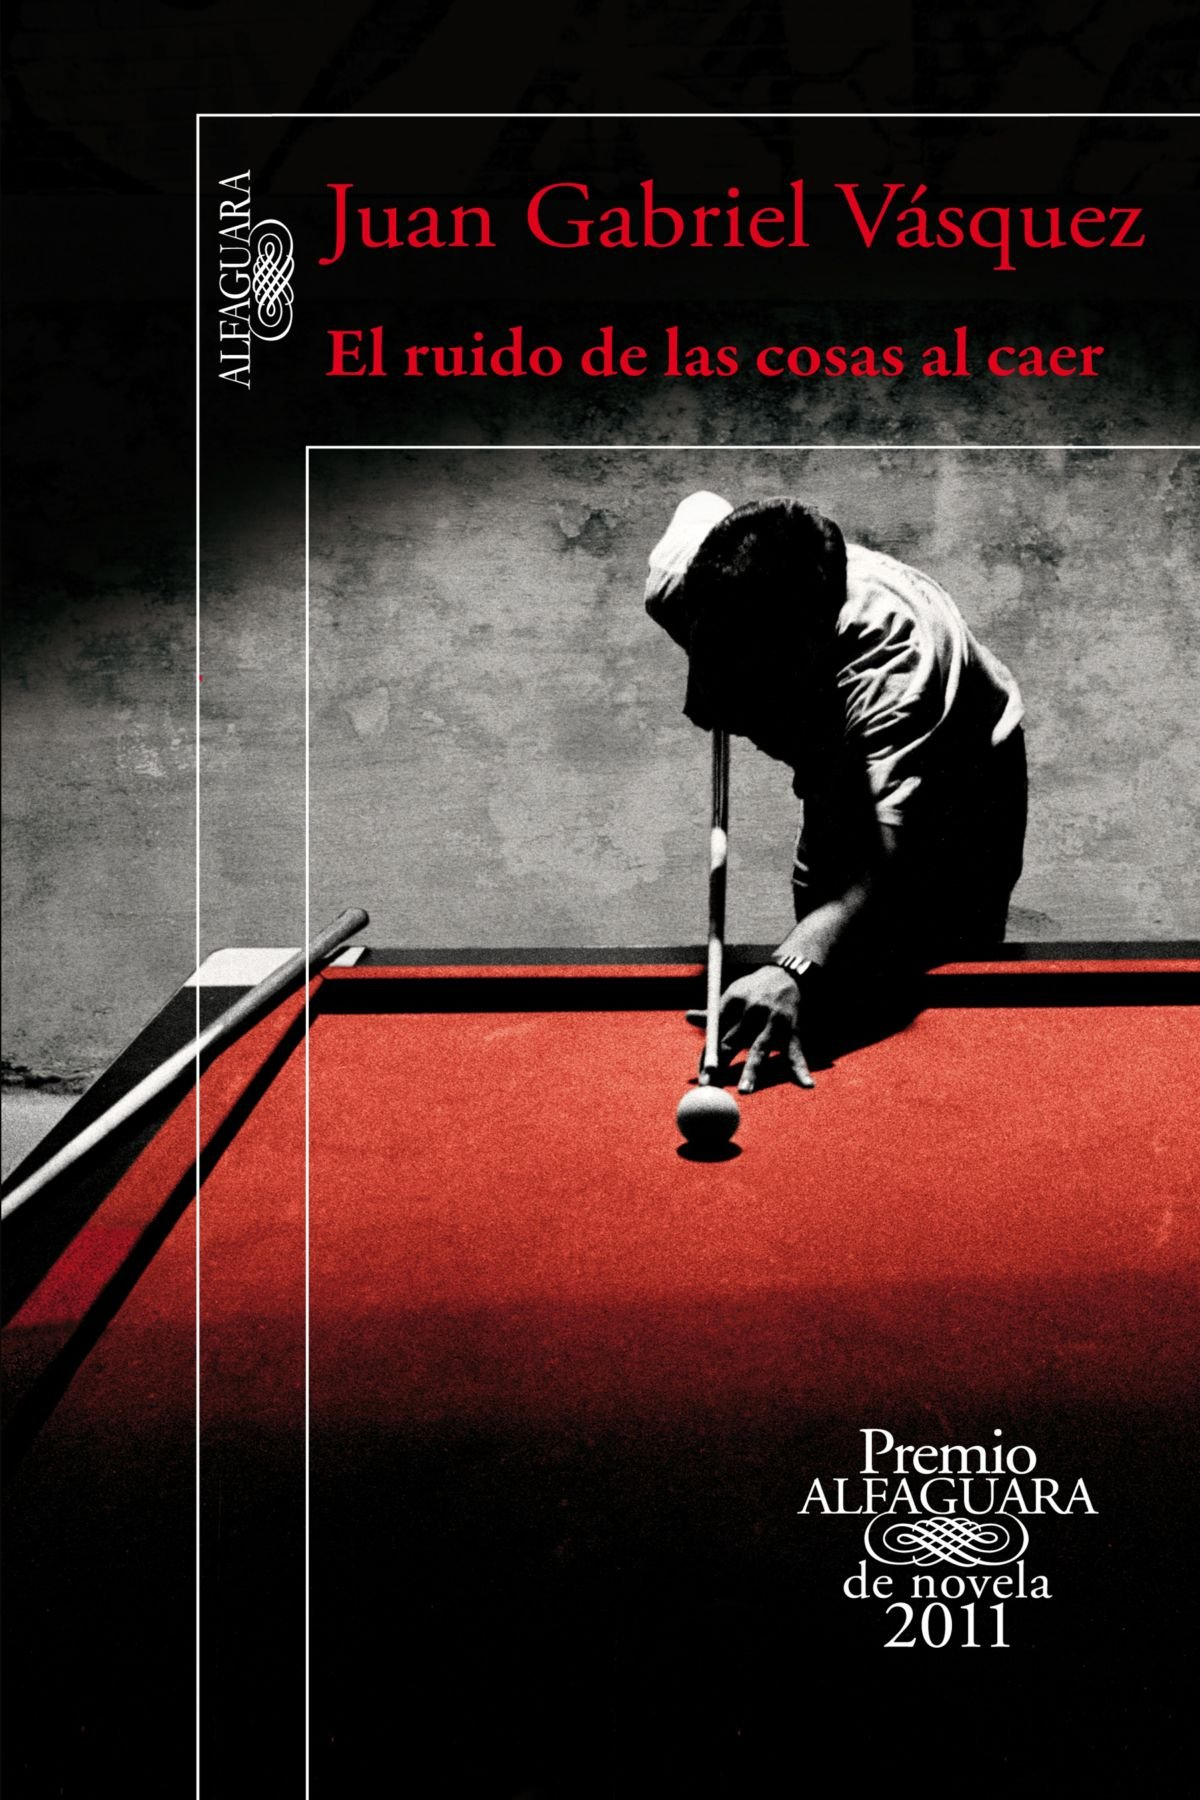 Download El ruido de las cosas al caer (Premio Alfaguara 2011) / The sound of things falling (Spanish Edition) ebook